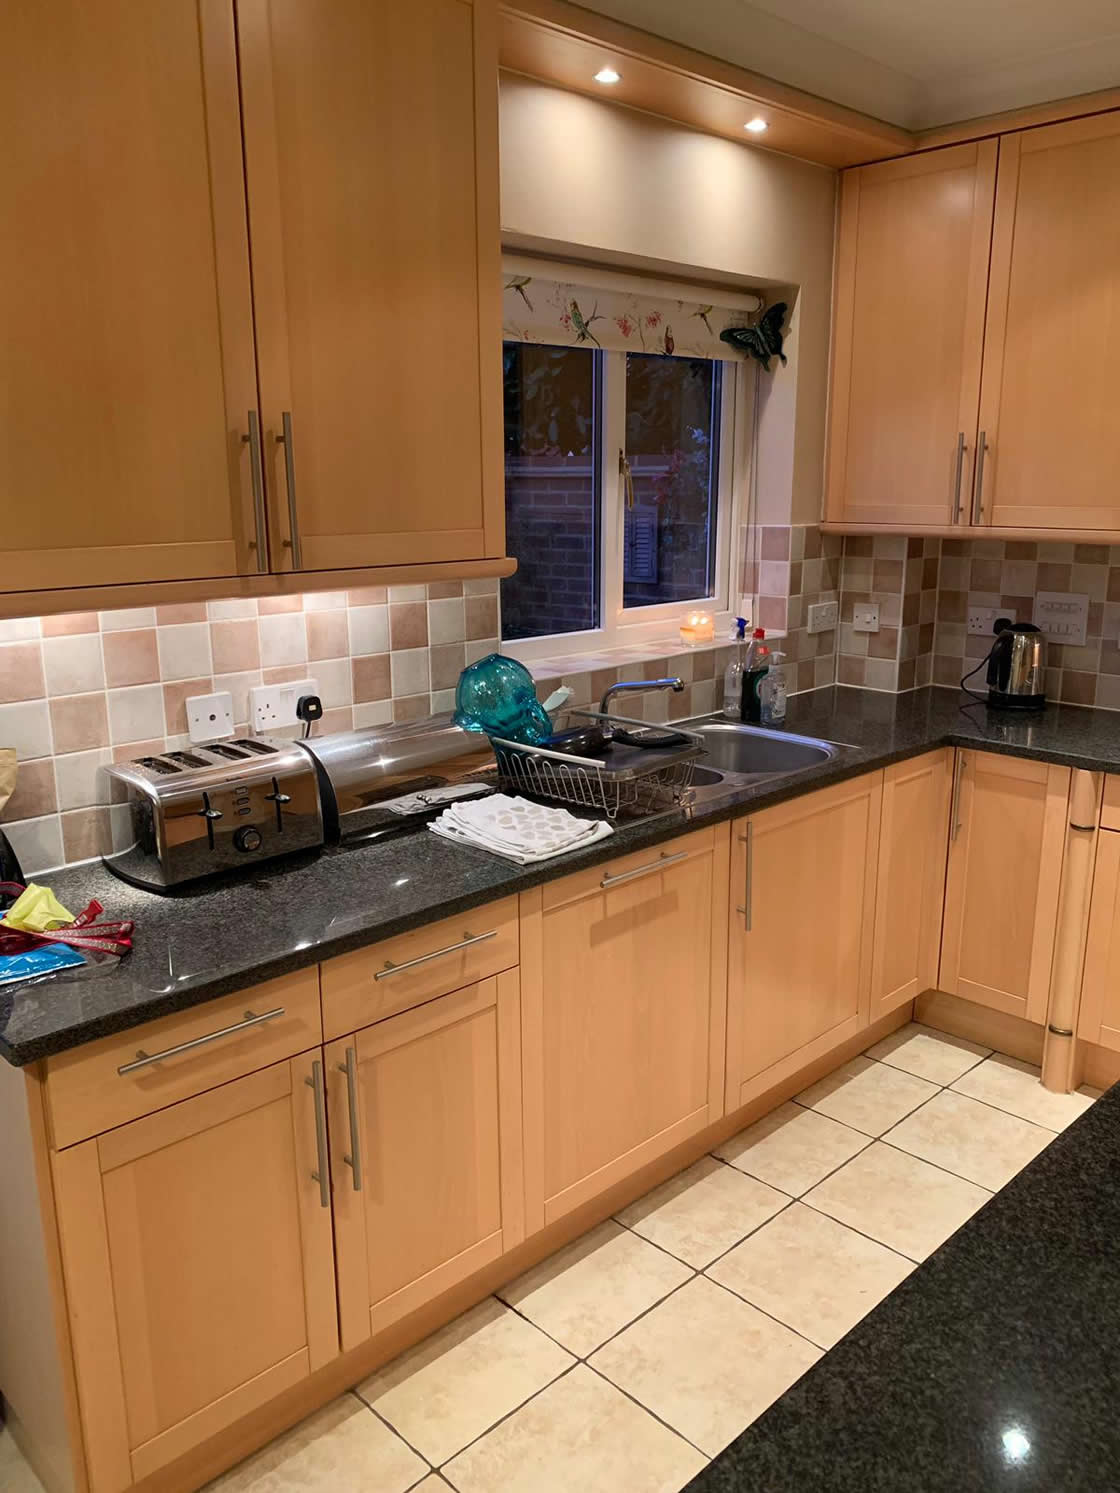 Bespoke Kitchen Project in Epsom - Before 2